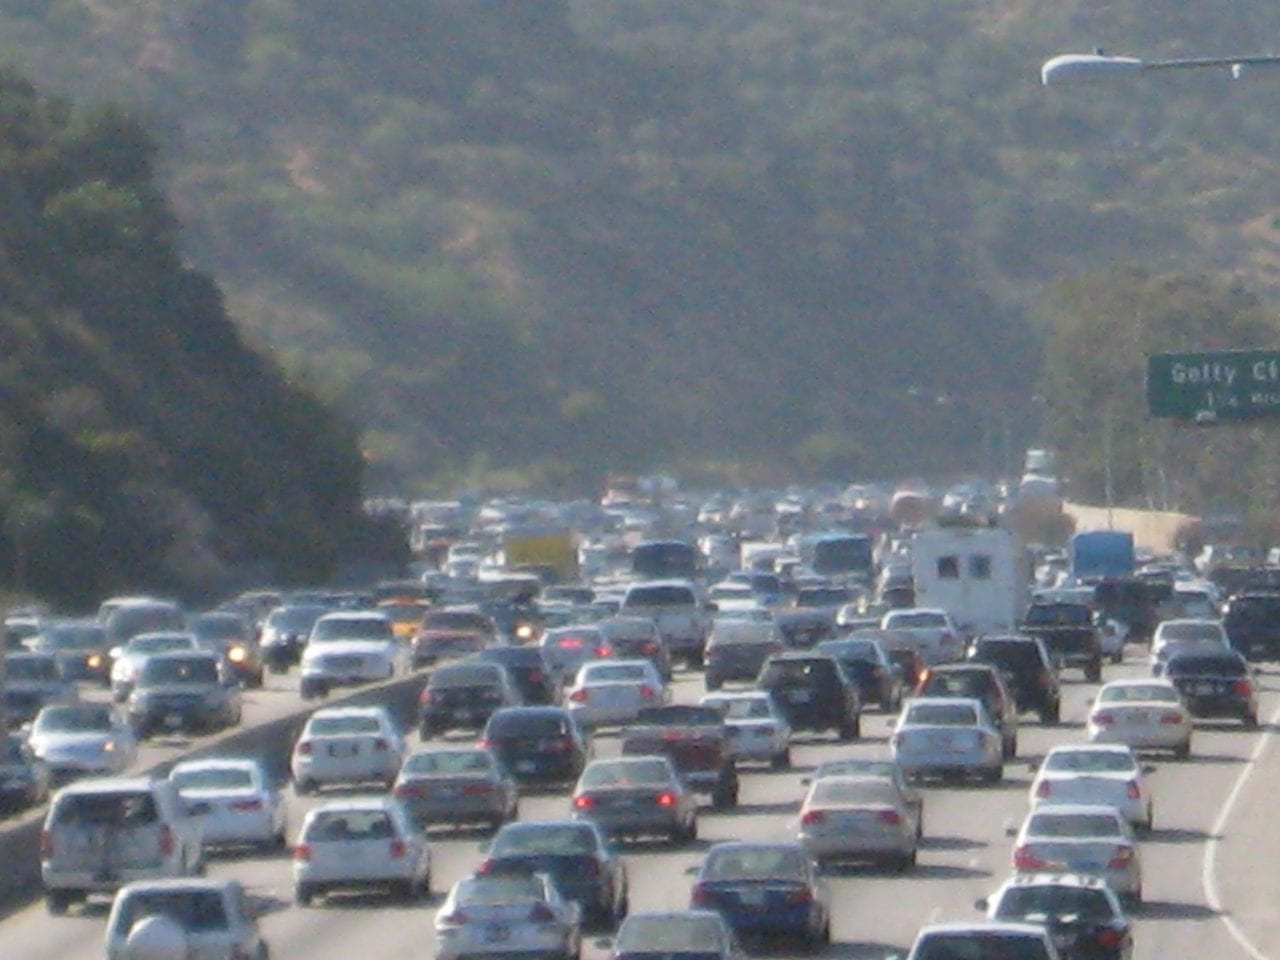 Why you need a get home bag - commuting on the 405